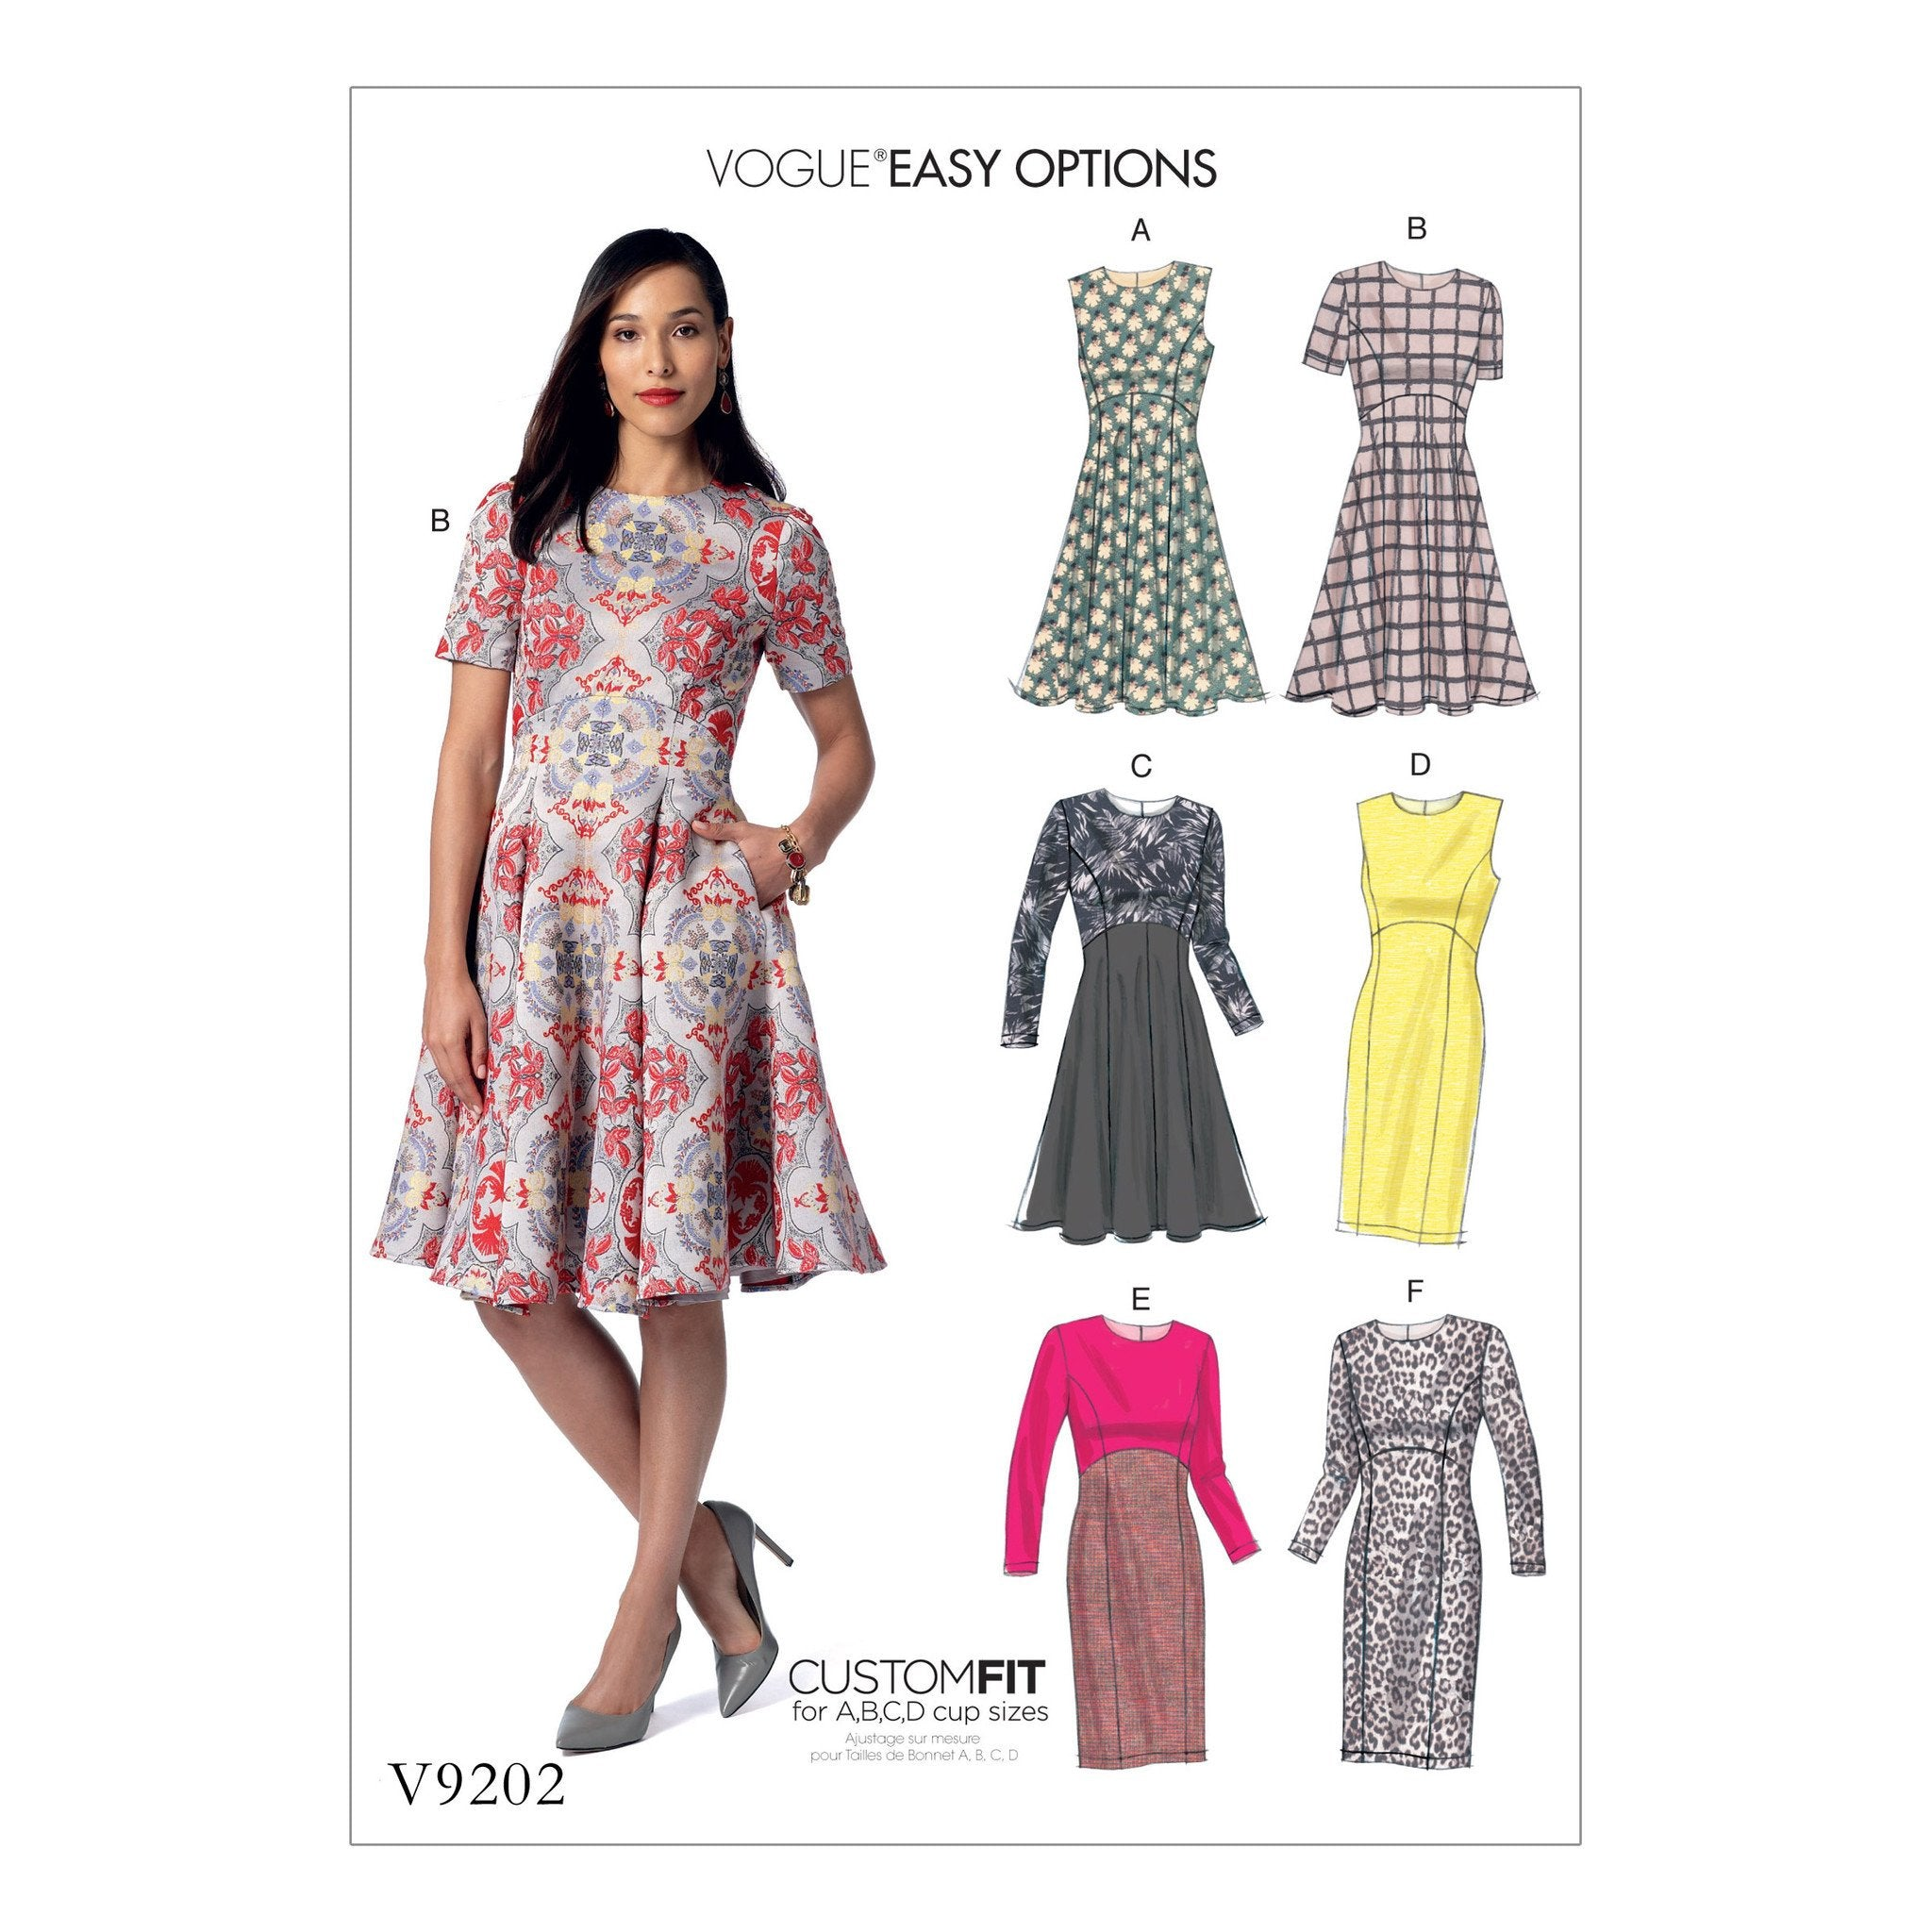 V9202 Dresses with Flared or Straight Skirt Options